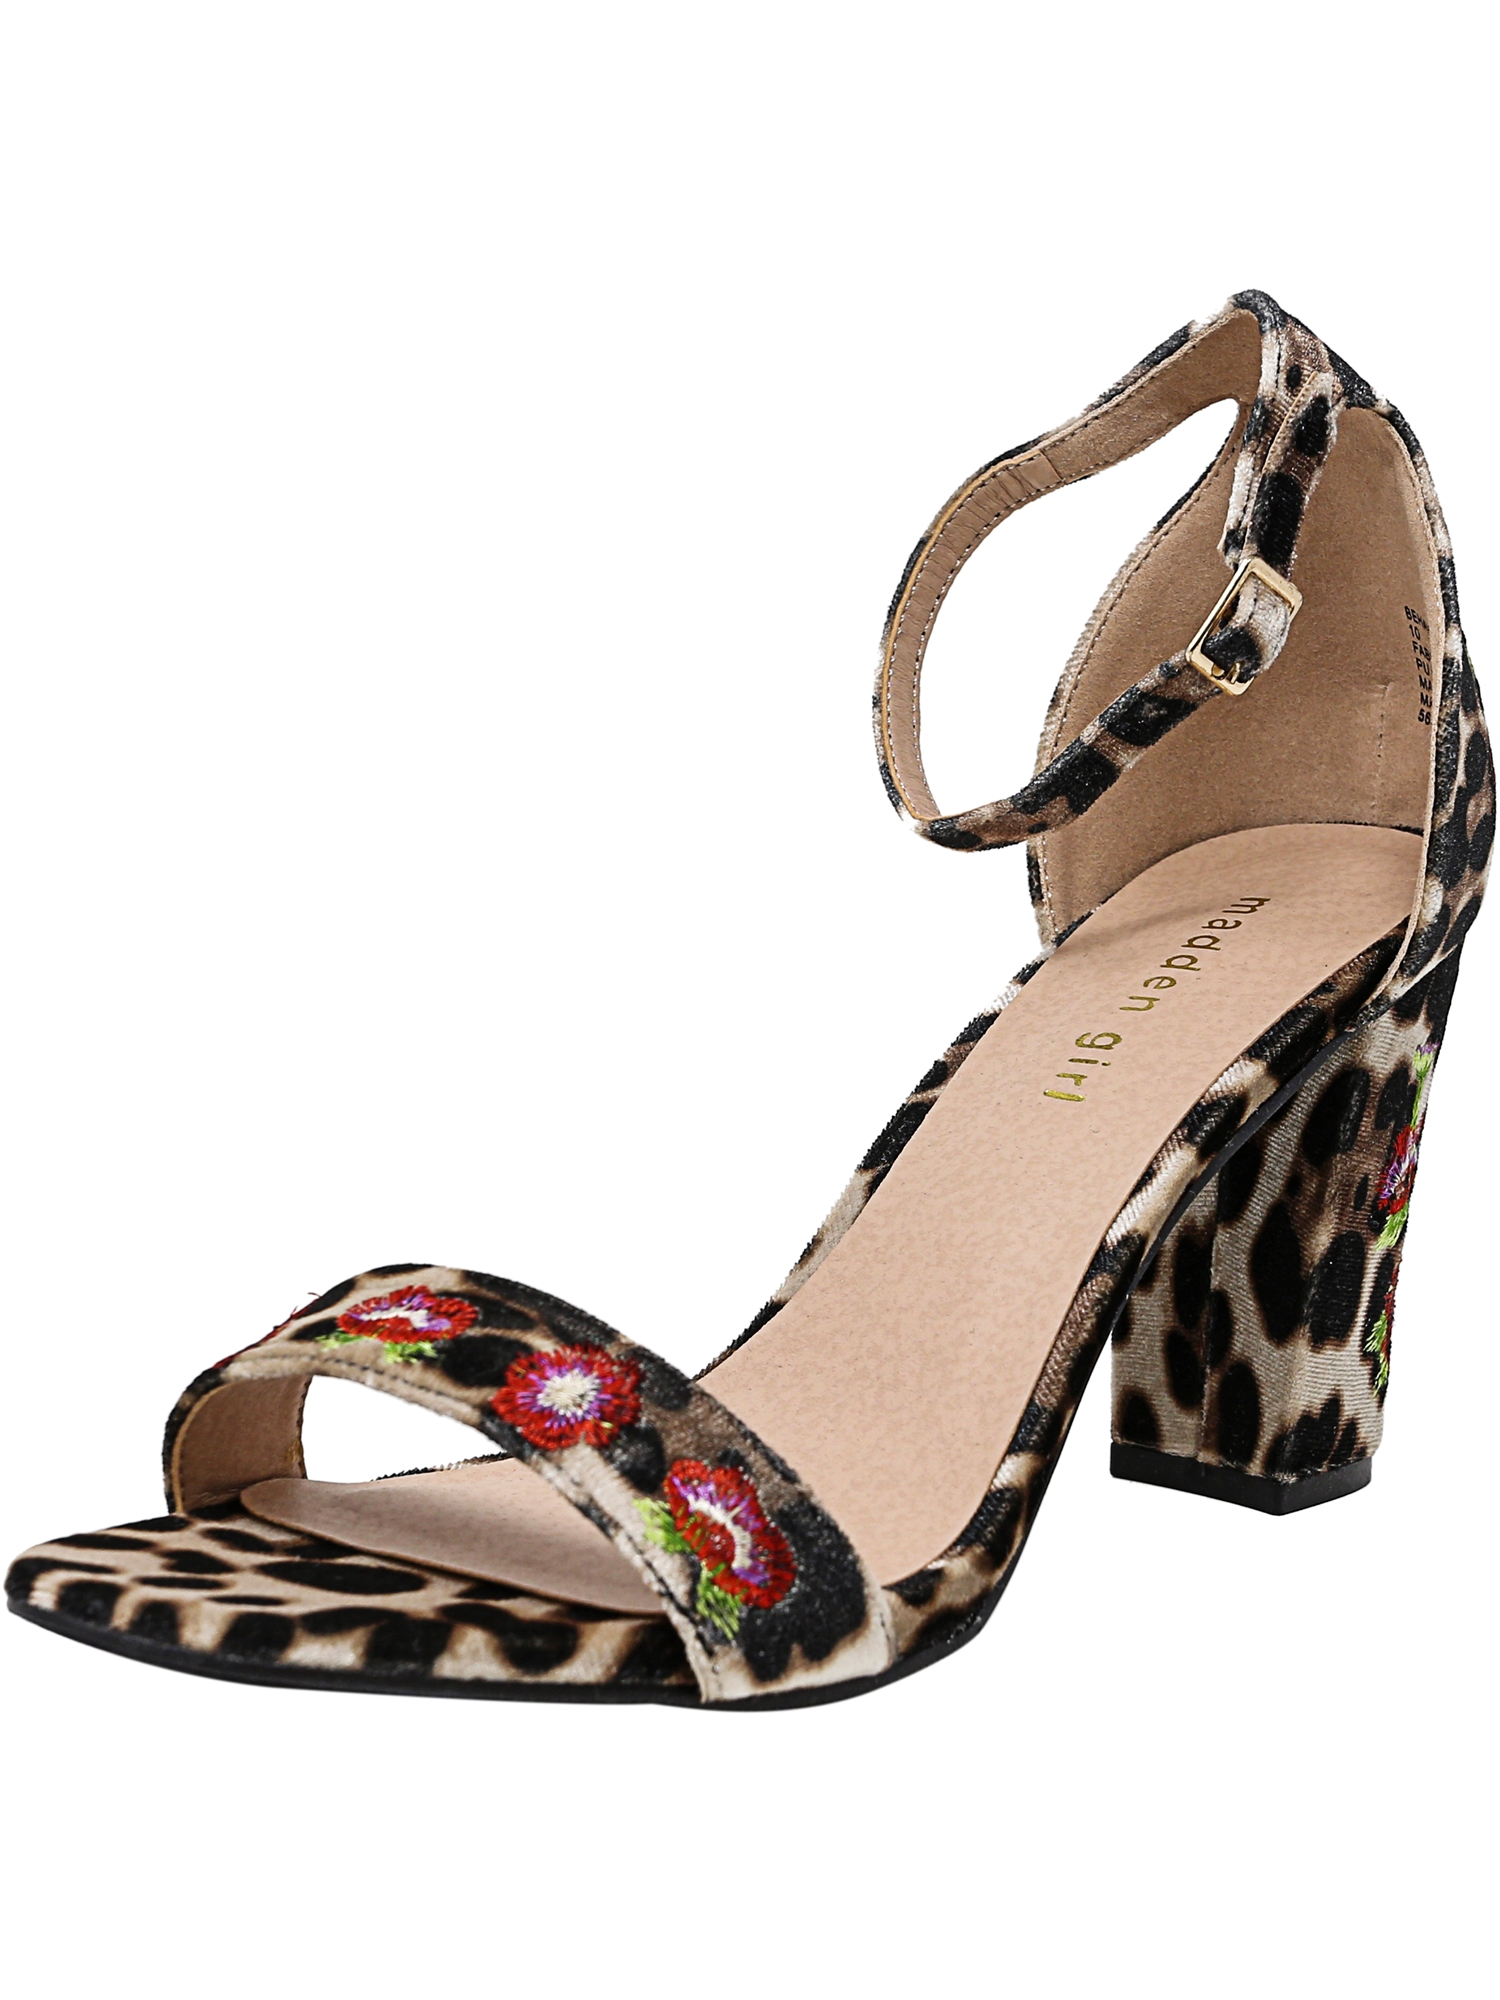 Madden Girl Women's Behave Leopard Ankle-High Fabric Pump - 7.5M